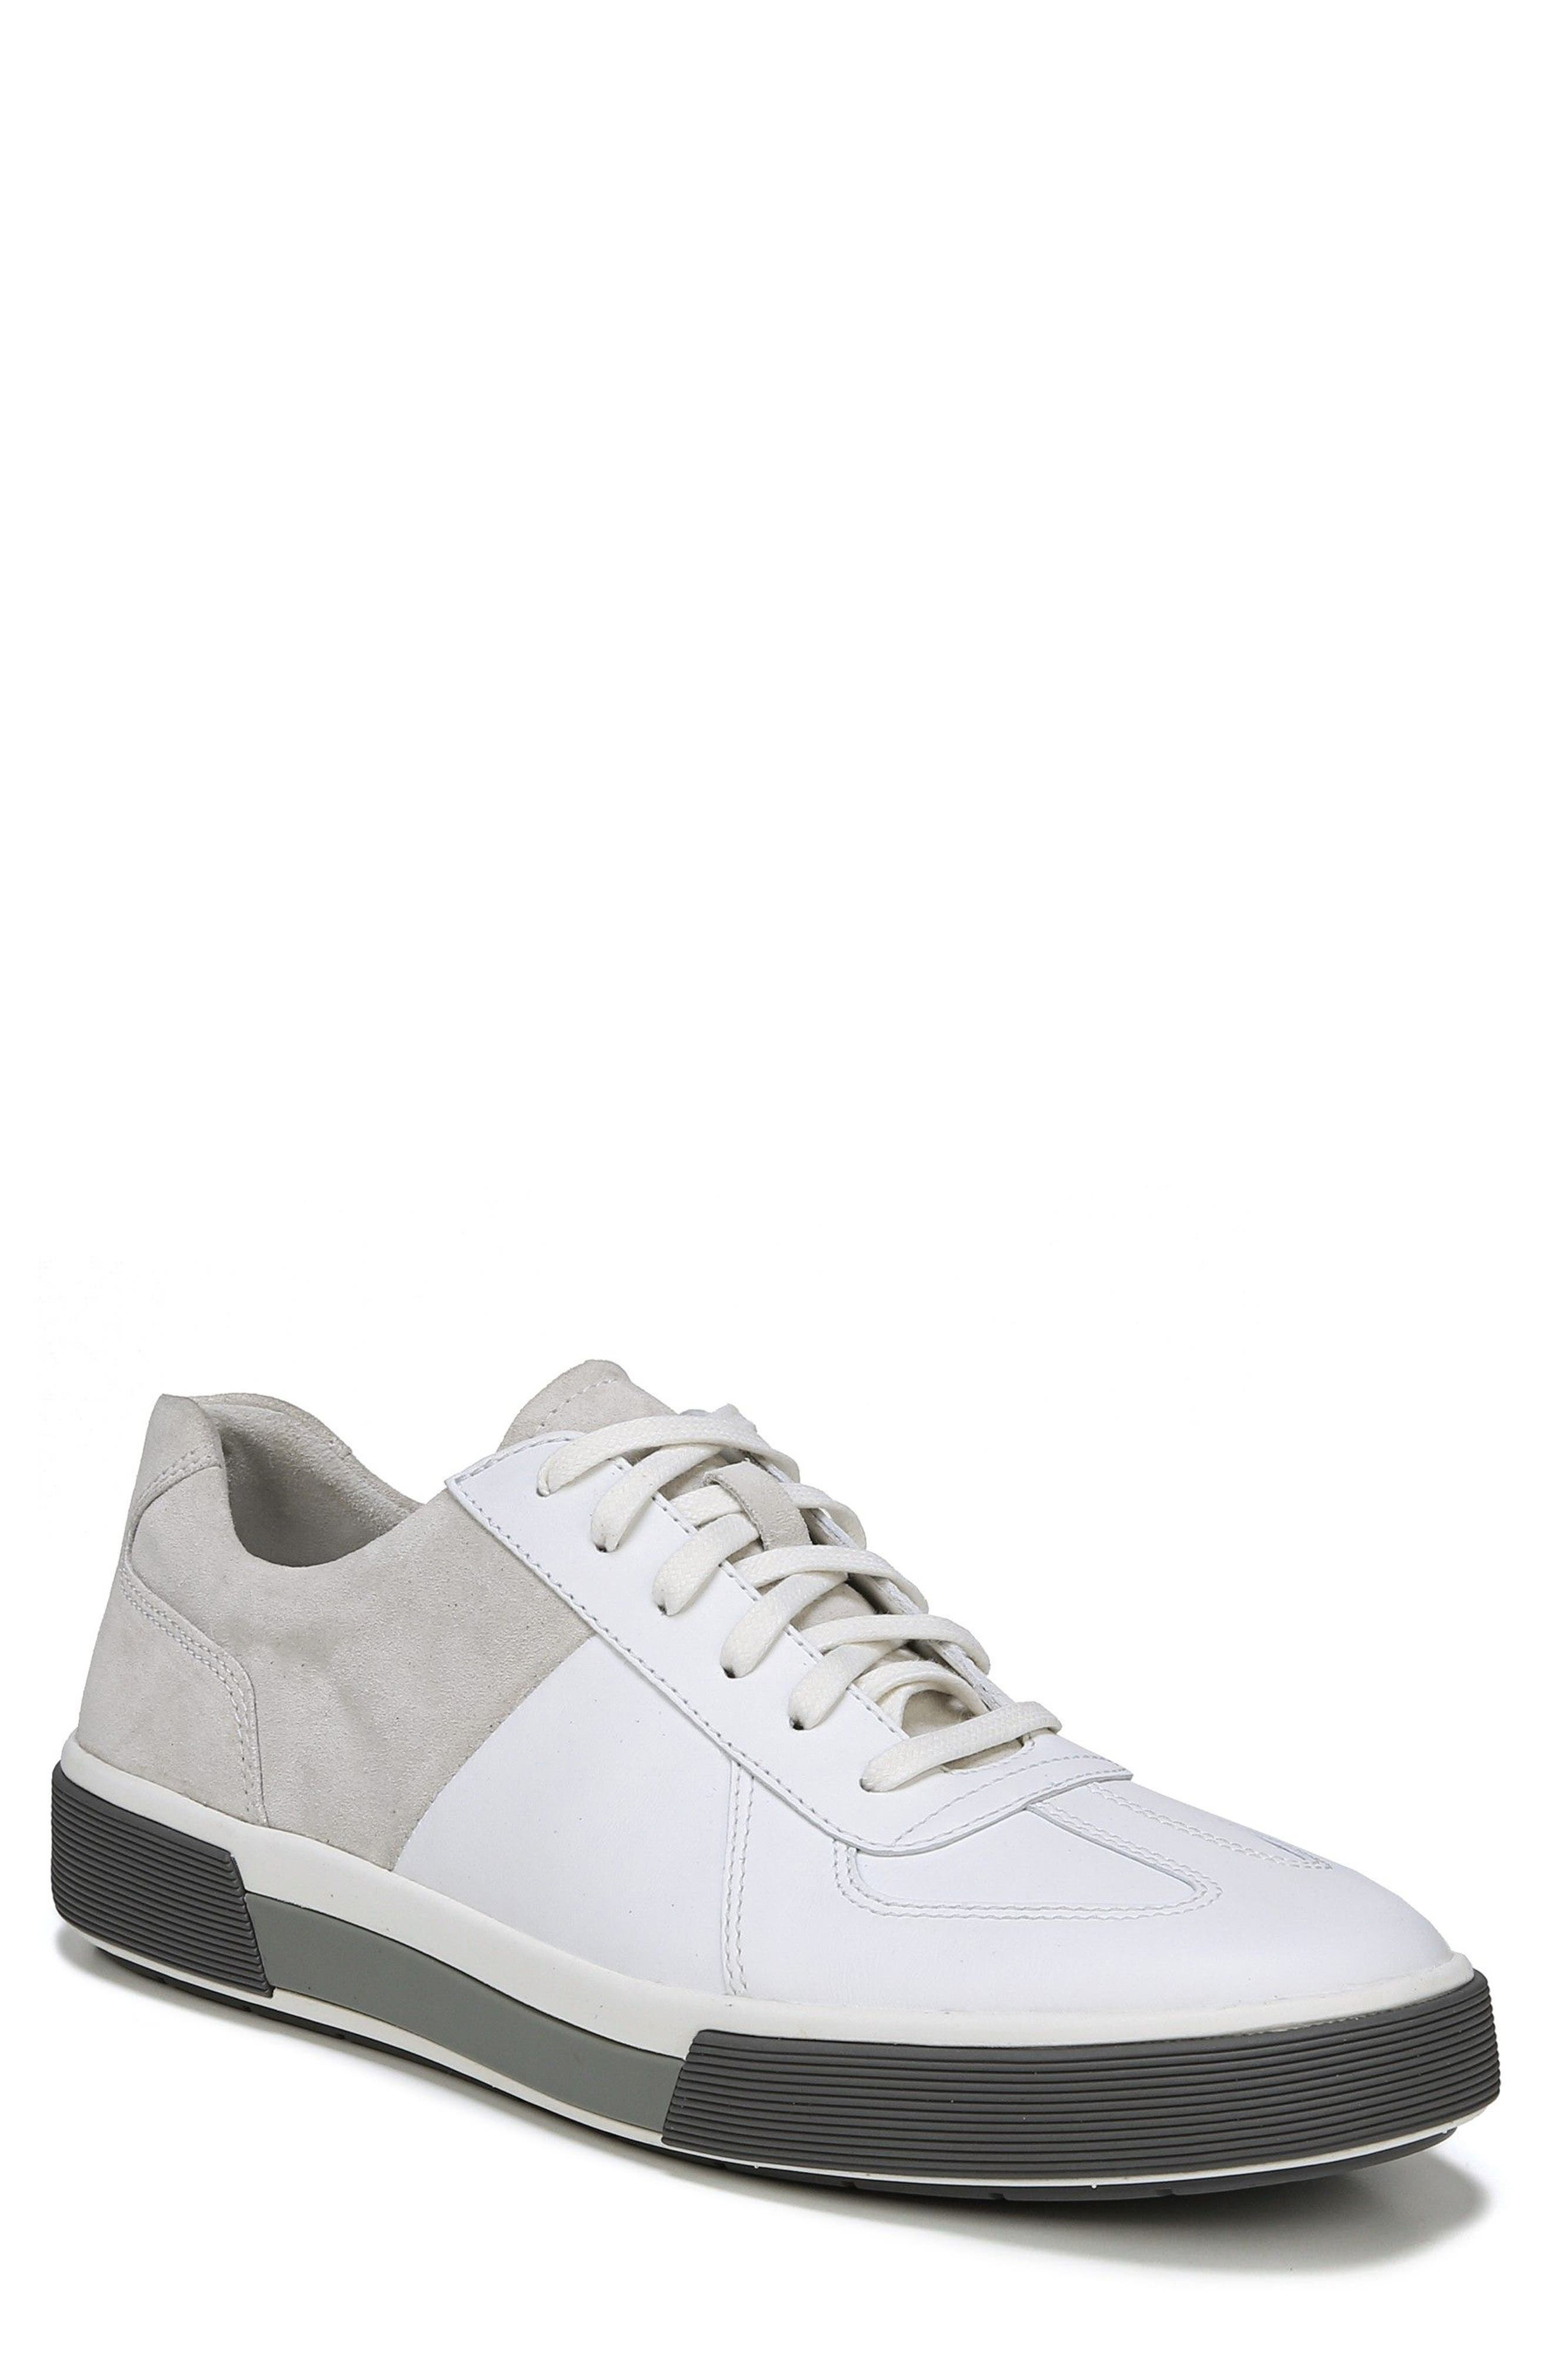 Rogue Low Top Sneaker,                         Main,                         color, White/ Horchata